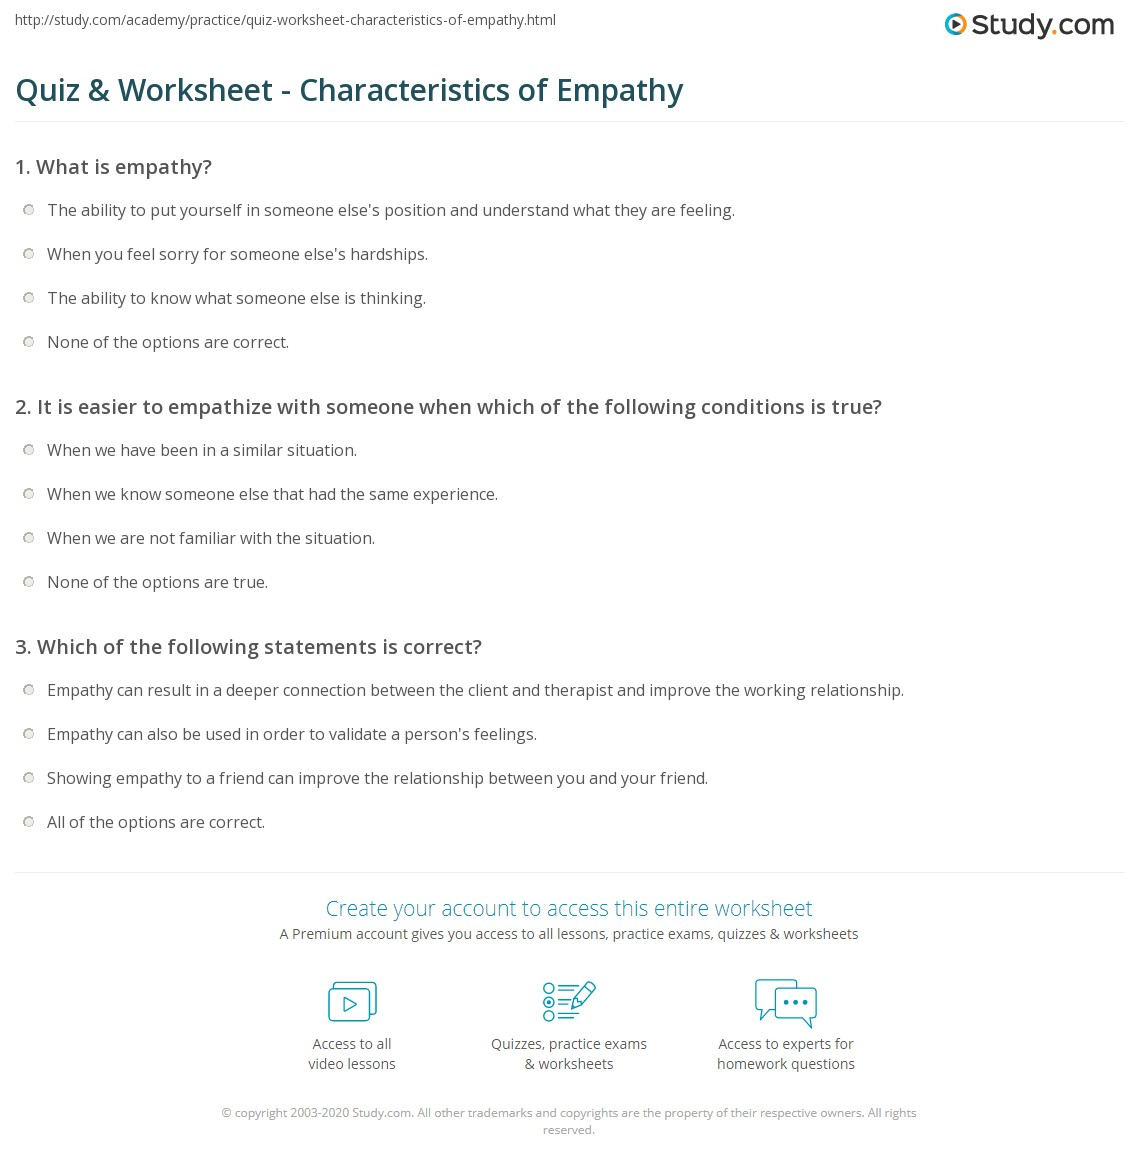 Quiz & Worksheet - Characteristics of Empathy | Study com